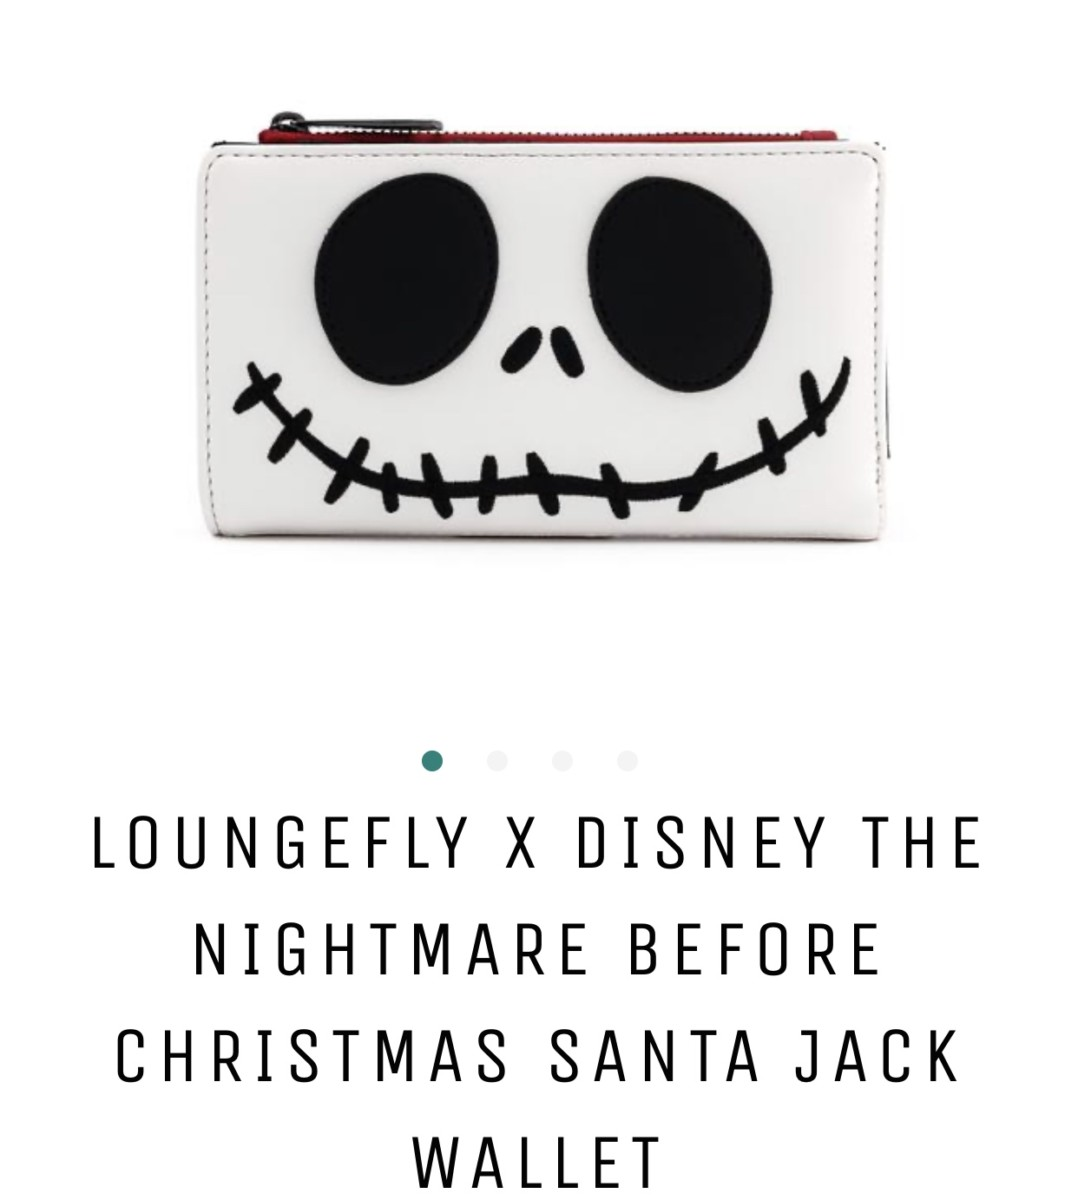 New Nightmare Before Christmas Bags from Loungefly 8